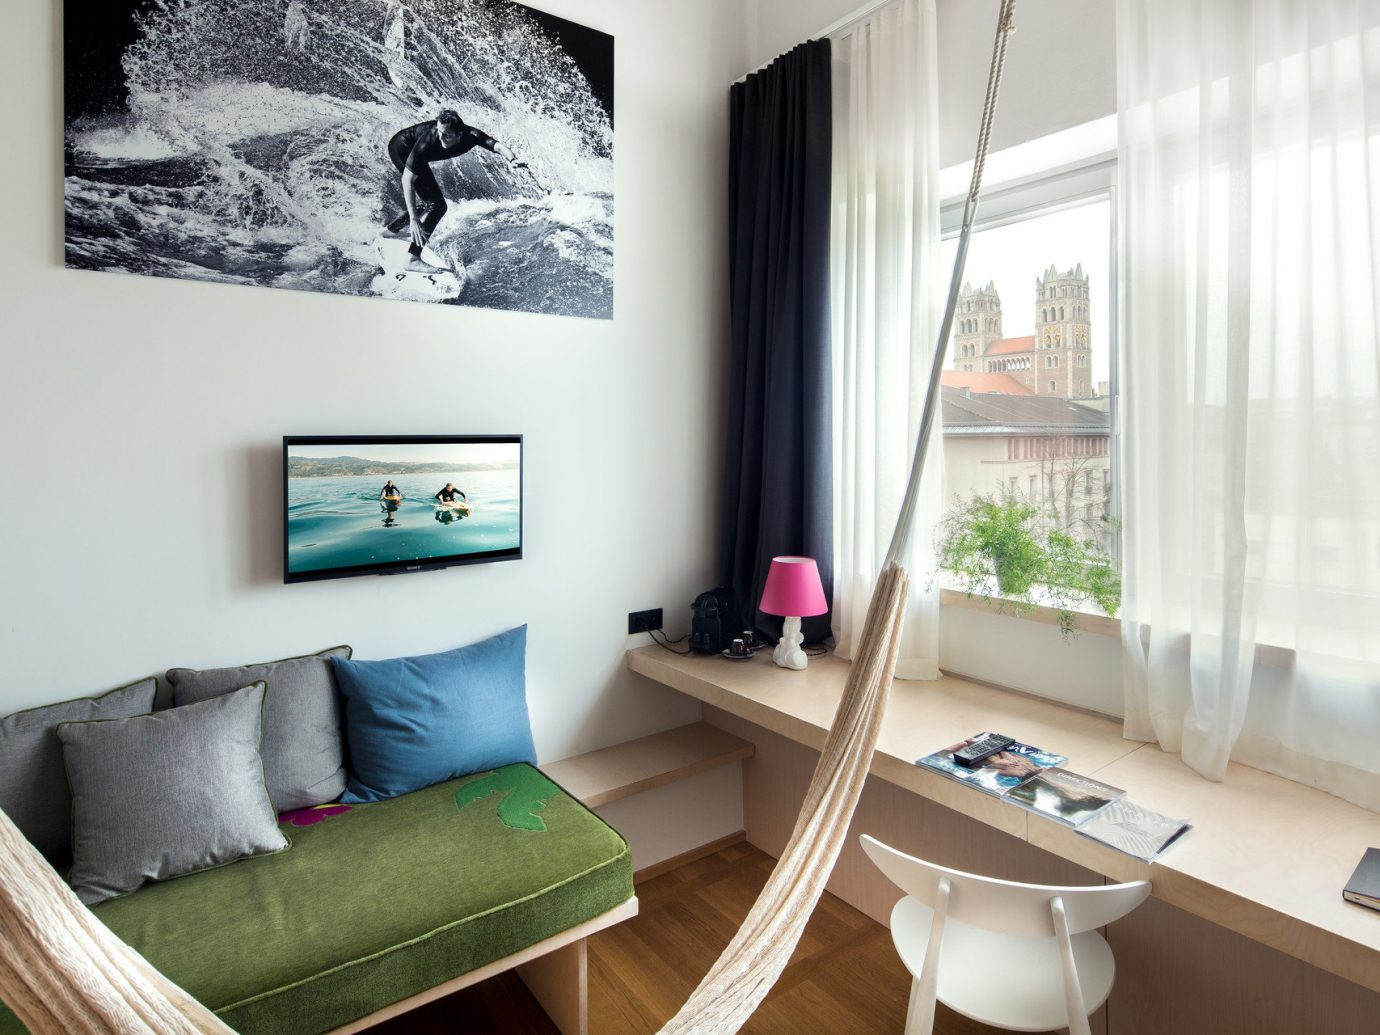 airy bed Bedroom charming city views clean cozy europe Germany Hotels interior living area living room Lounge Munich natural light quaint Suite view window indoor wall floor room property Living green home interior design Design apartment cottage condominium furniture decorated